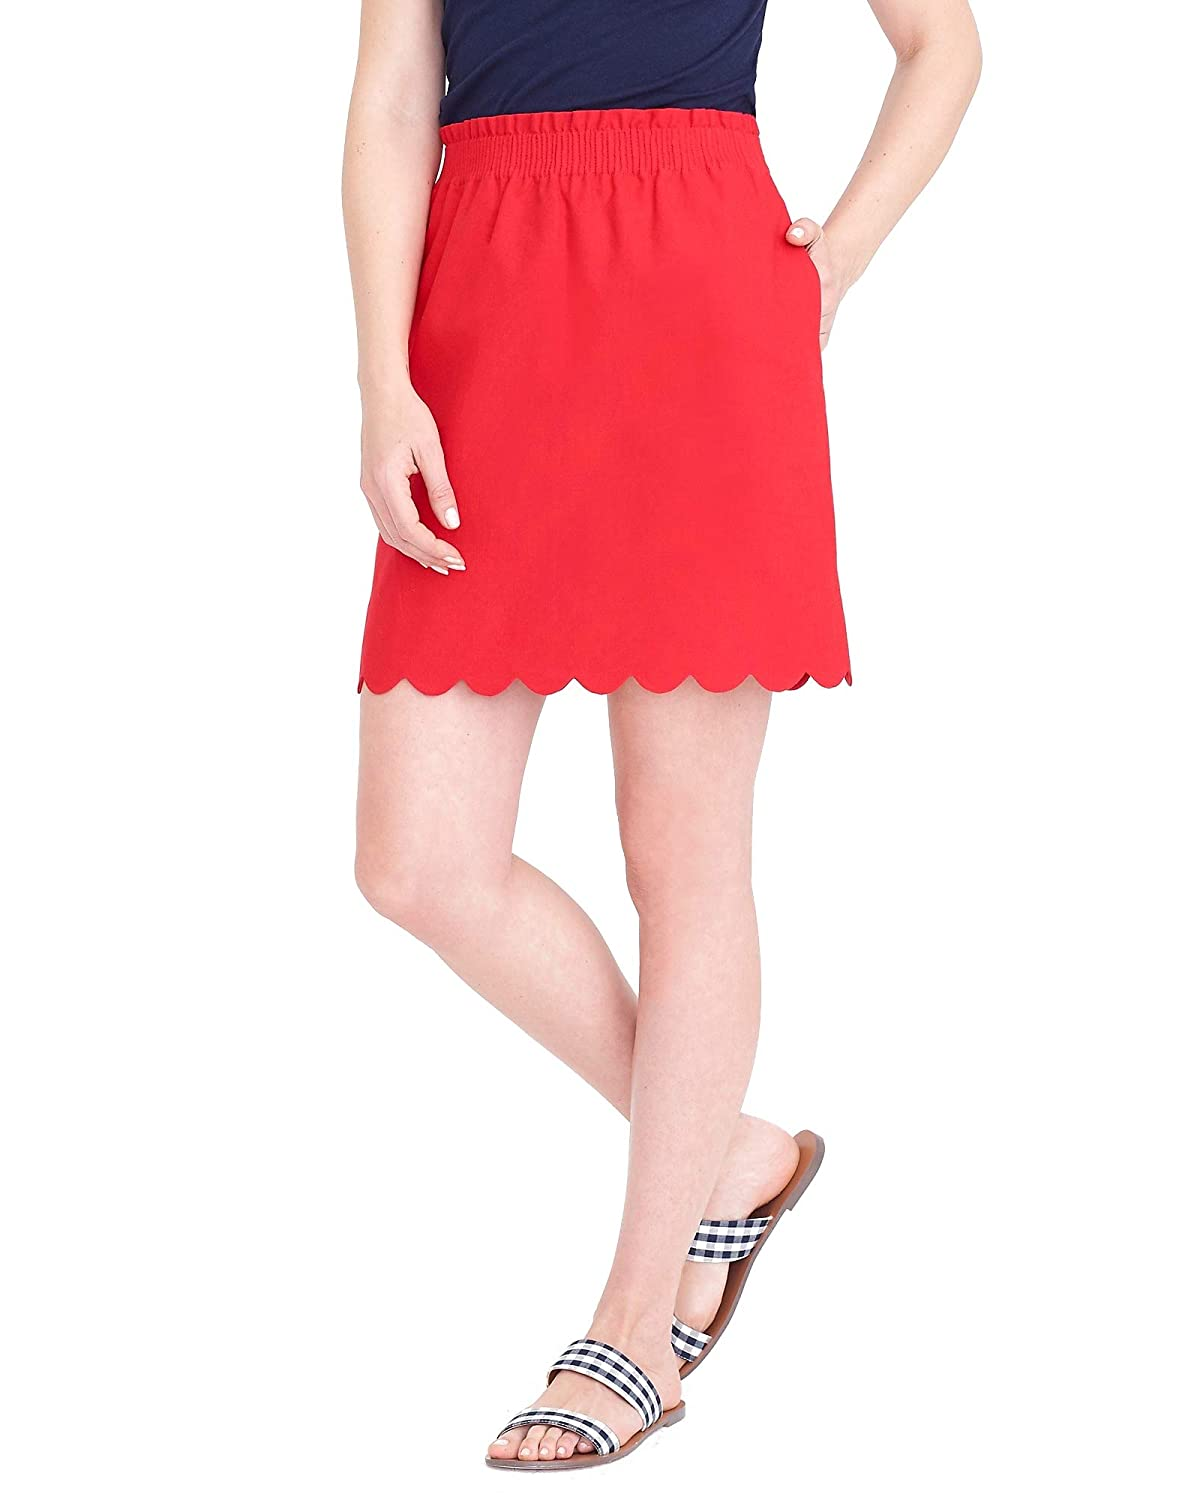 33f966dfe5 J.Crew Scalloped Sidewalk Lined Mini Skirt with Pockets at Amazon Women's  Clothing store: